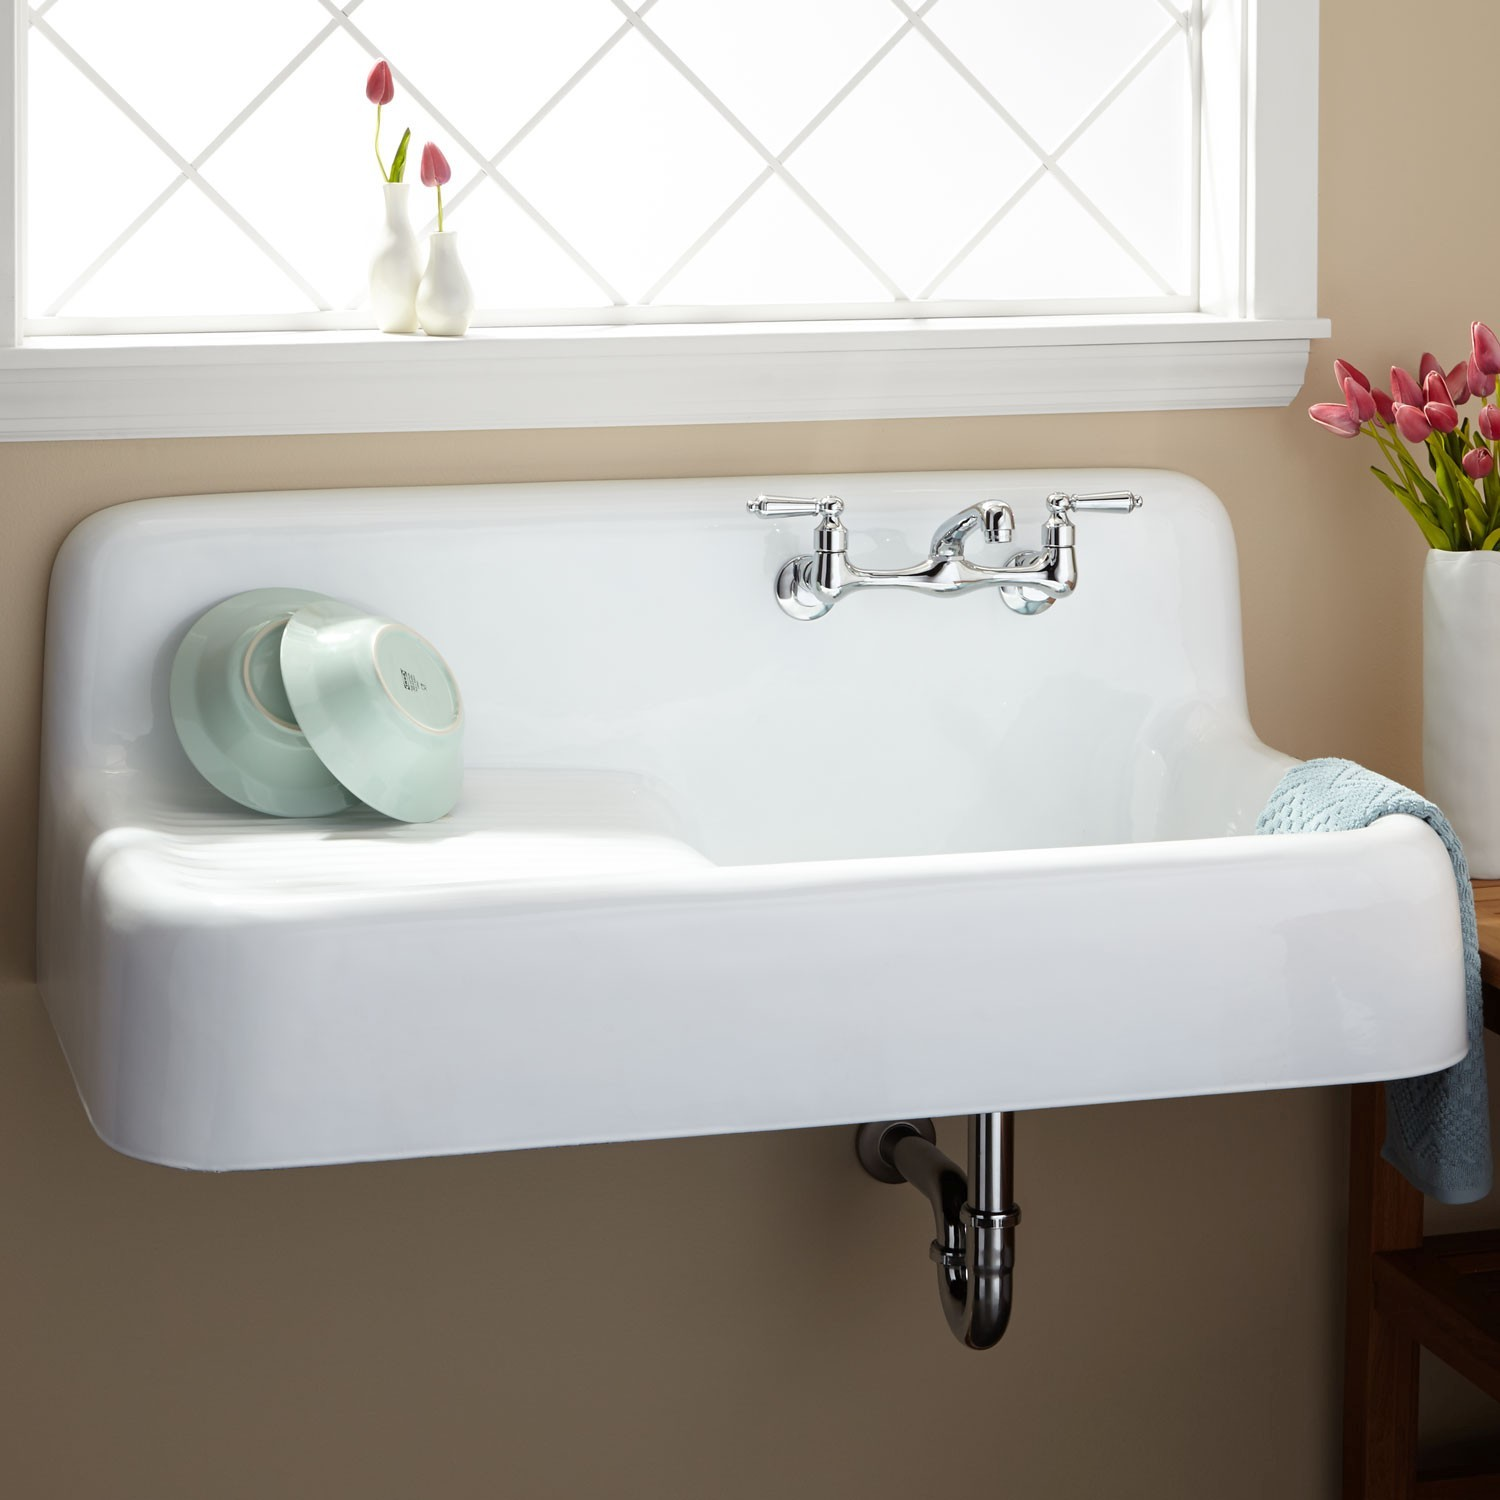 Cast Iron Bathroom Sink Terrific Cast Iron Wall Hung Kitchen Sink with Drainboard Kitchen Online